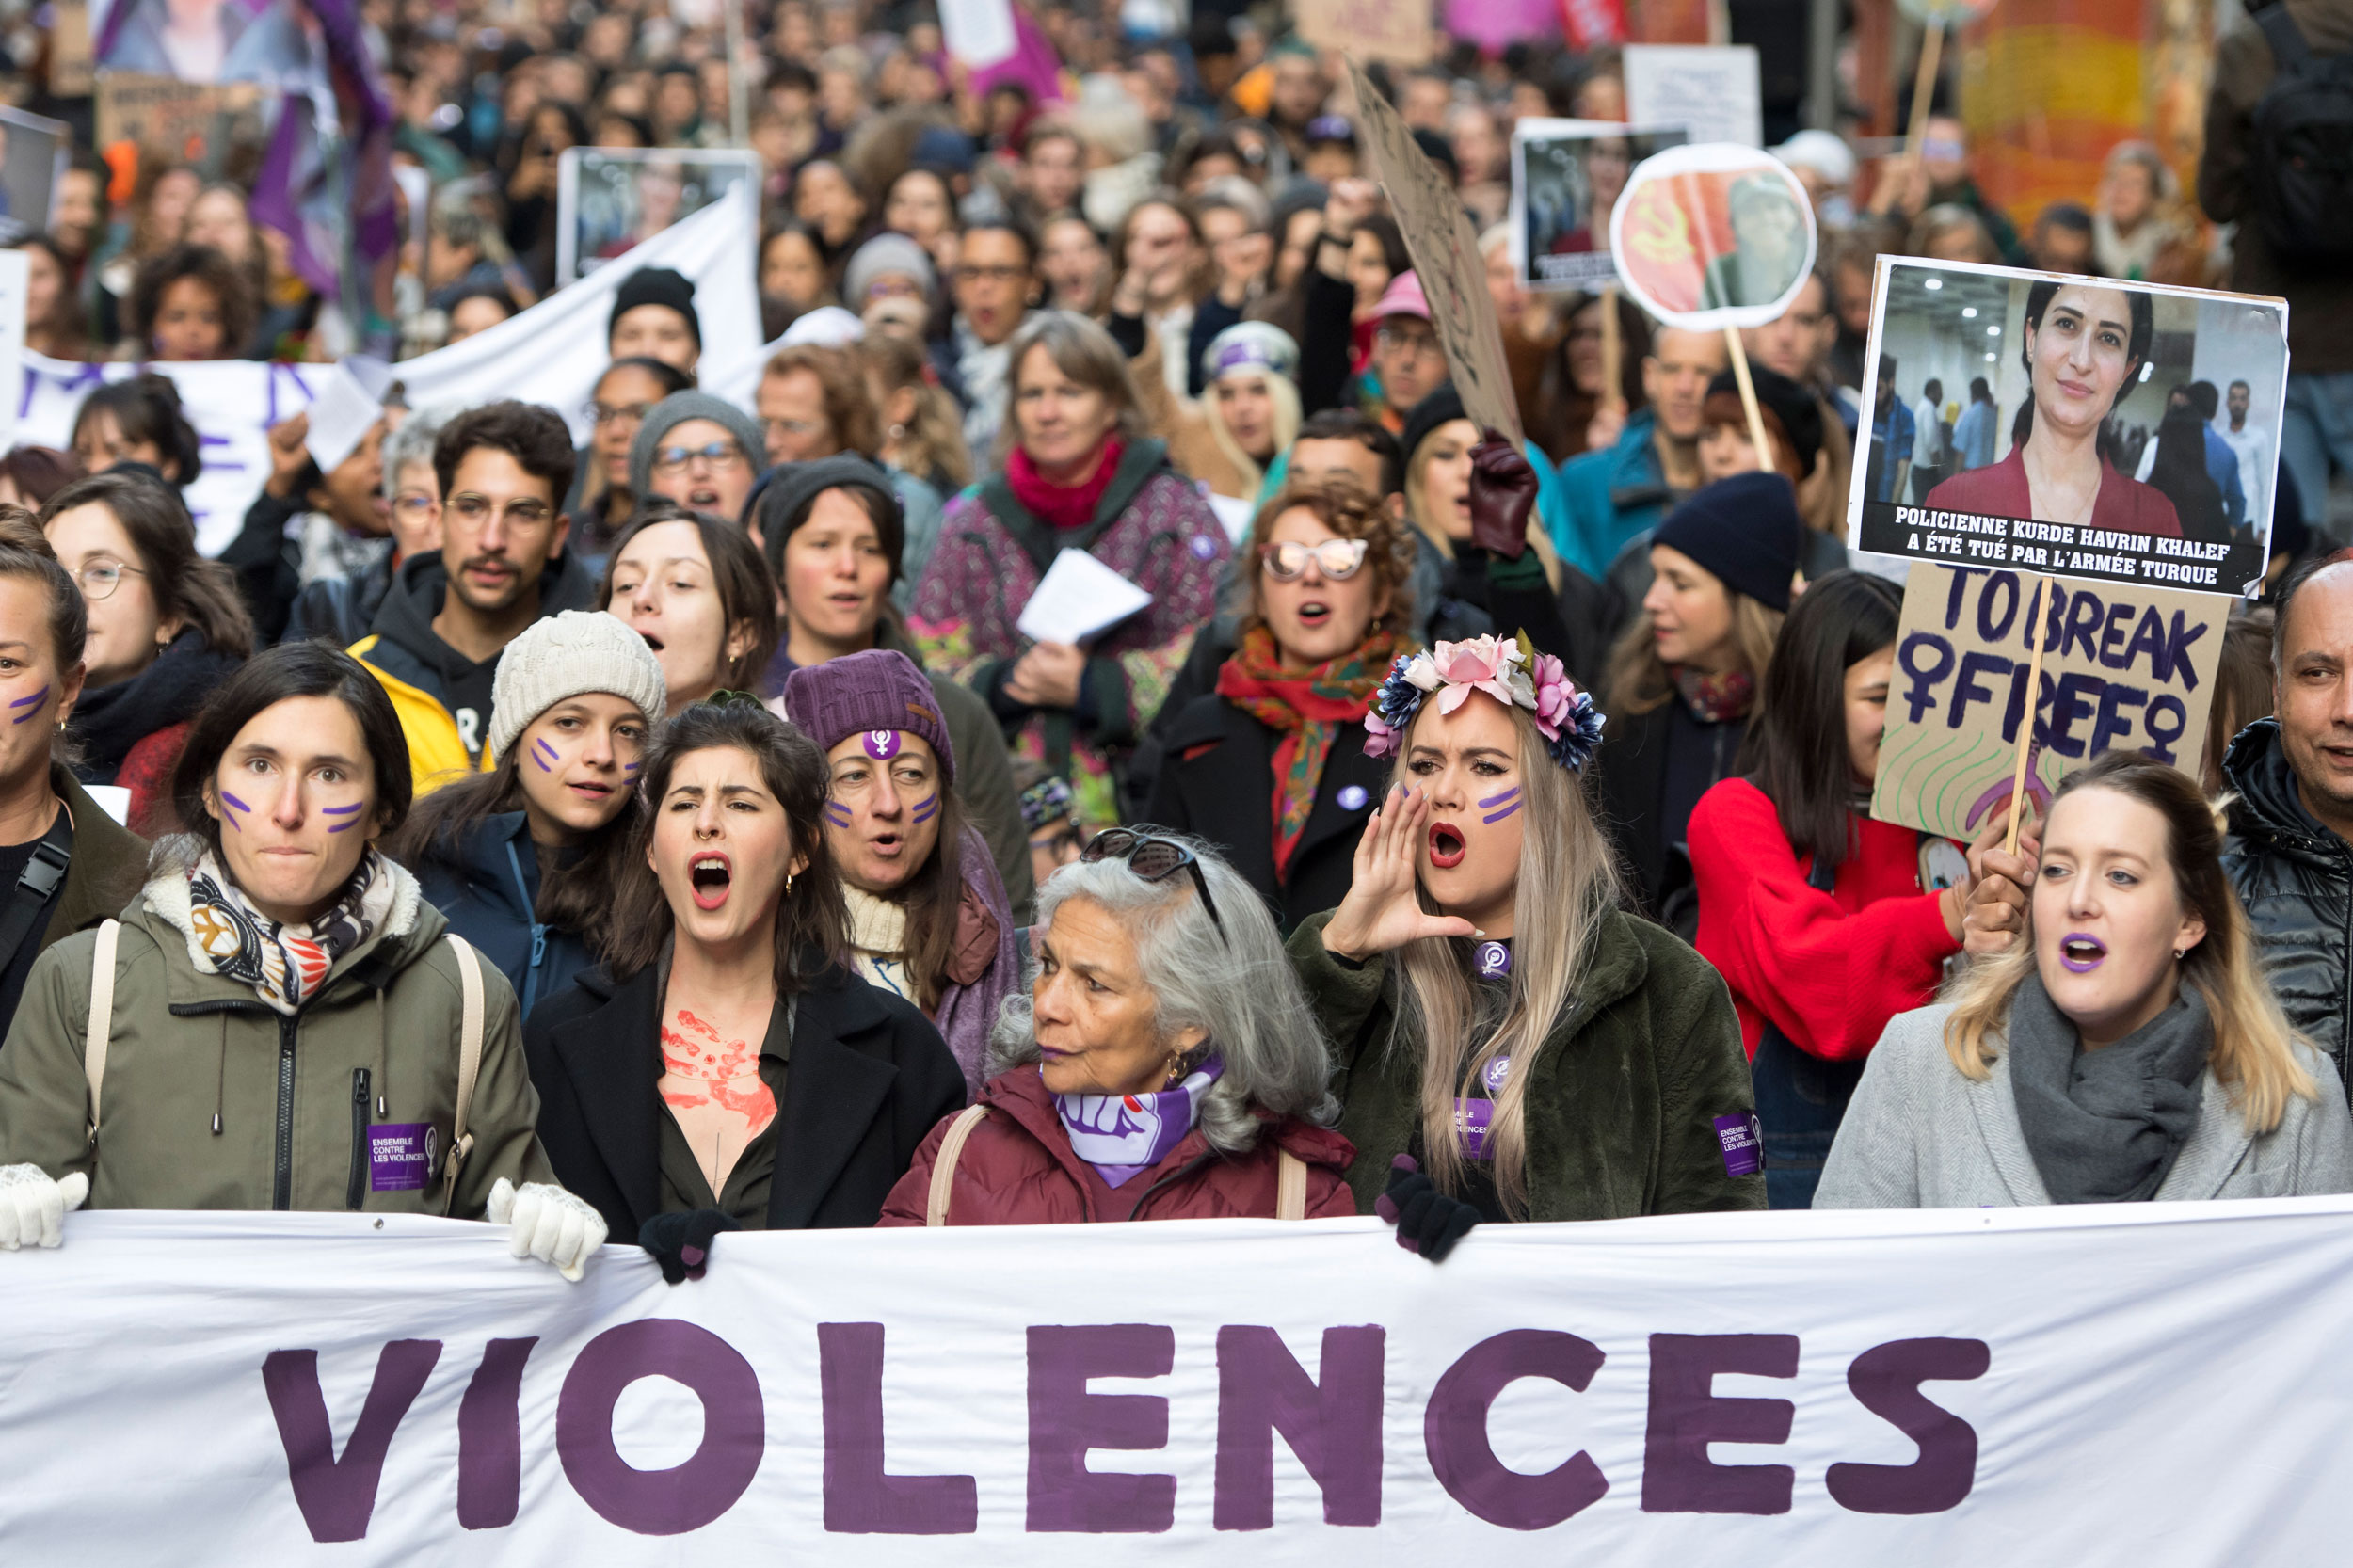 Women shout slogans during a demonstration against gender-based and sexual violence in Lausanne on November 23, 2019.